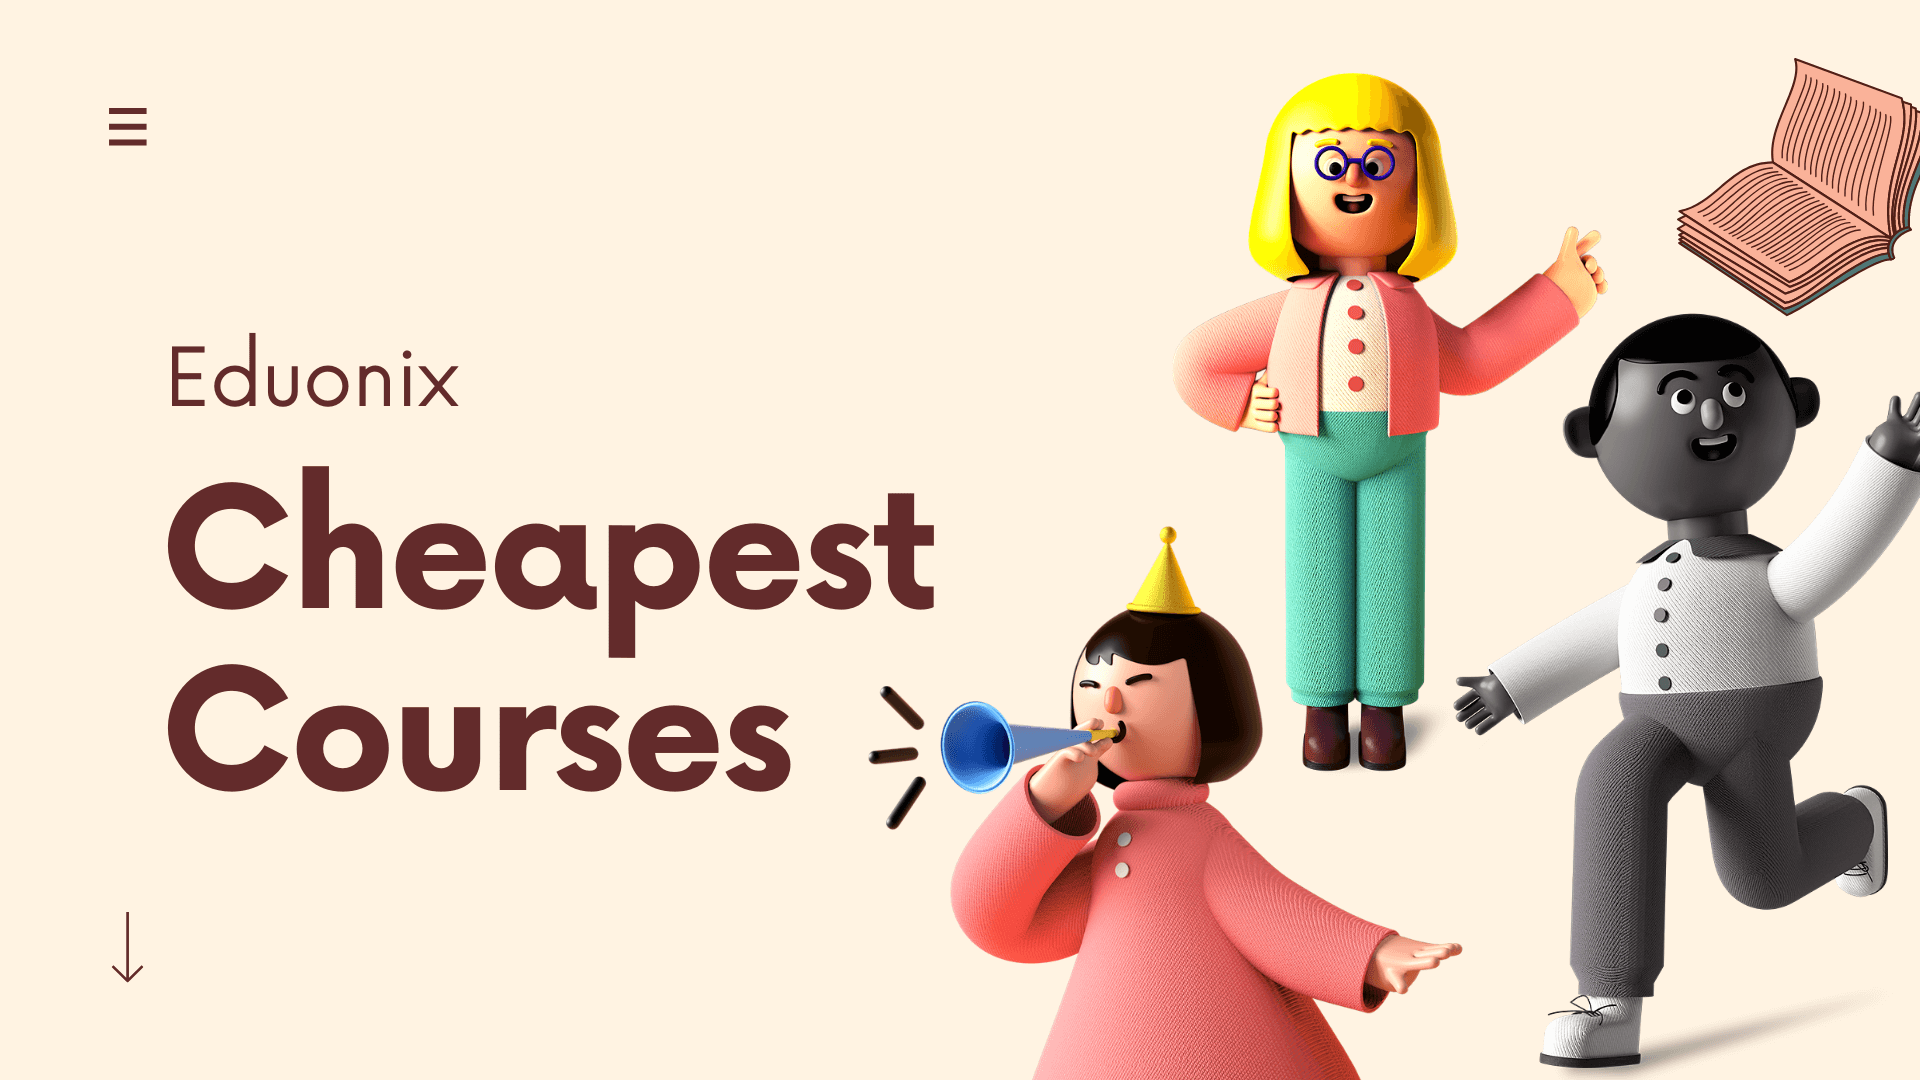 Cheapest Courses By Eduonix